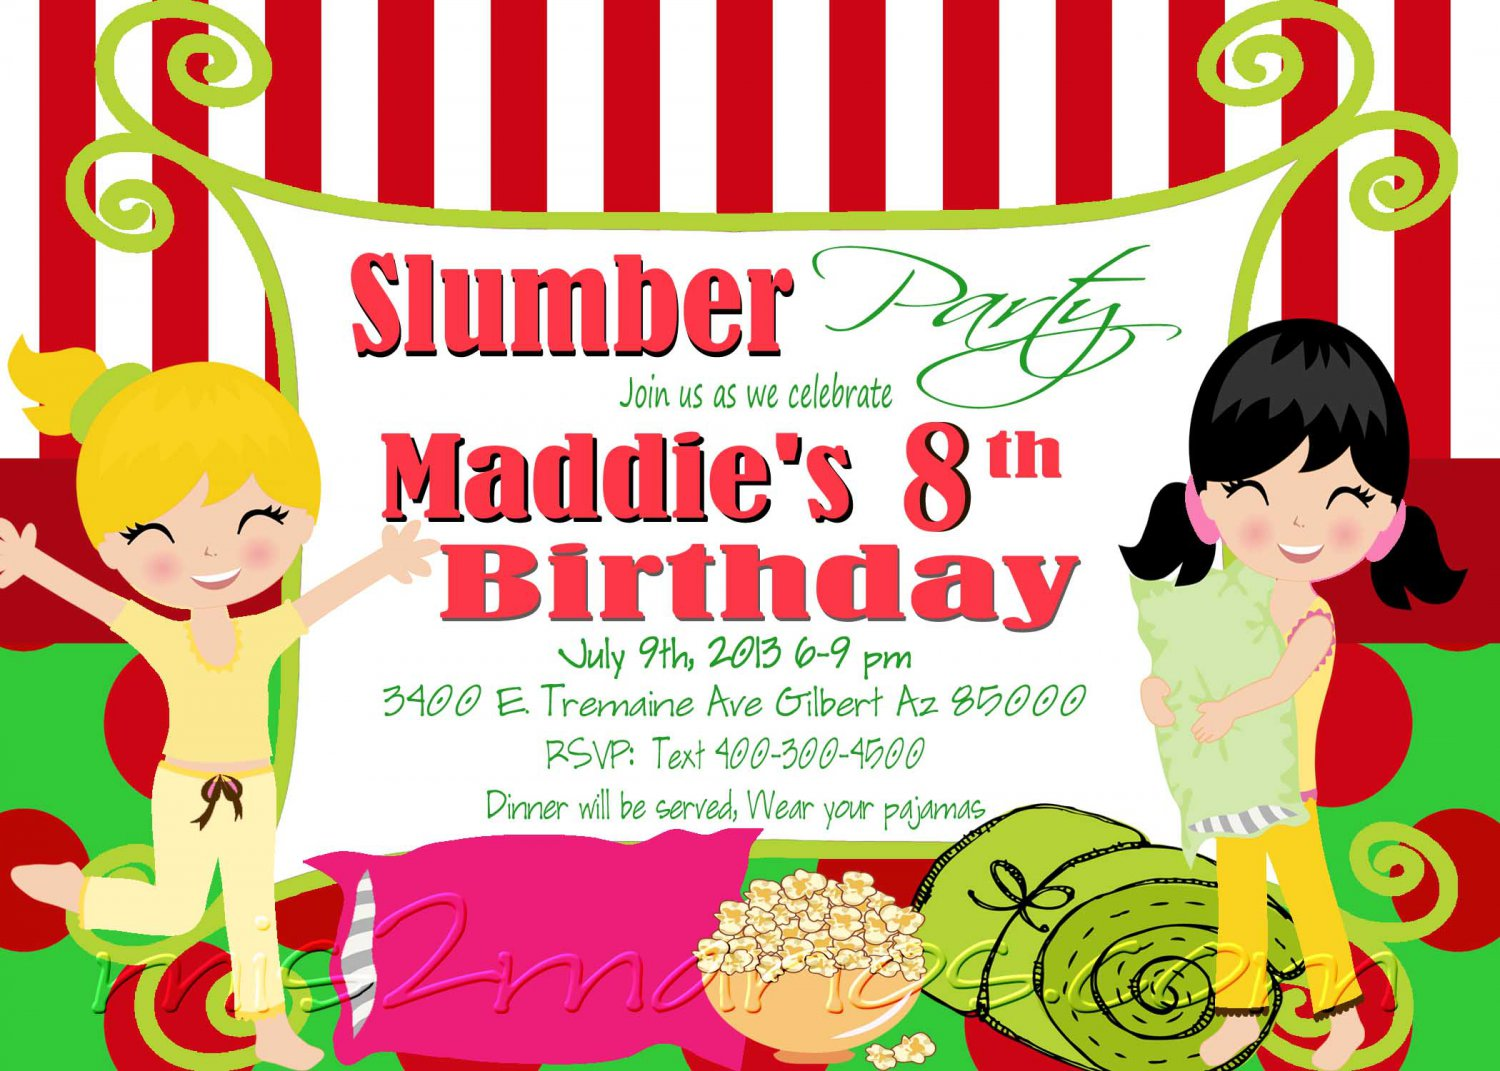 Slumber Party Invitation Sleepover Invite Birthday Party Girls ...